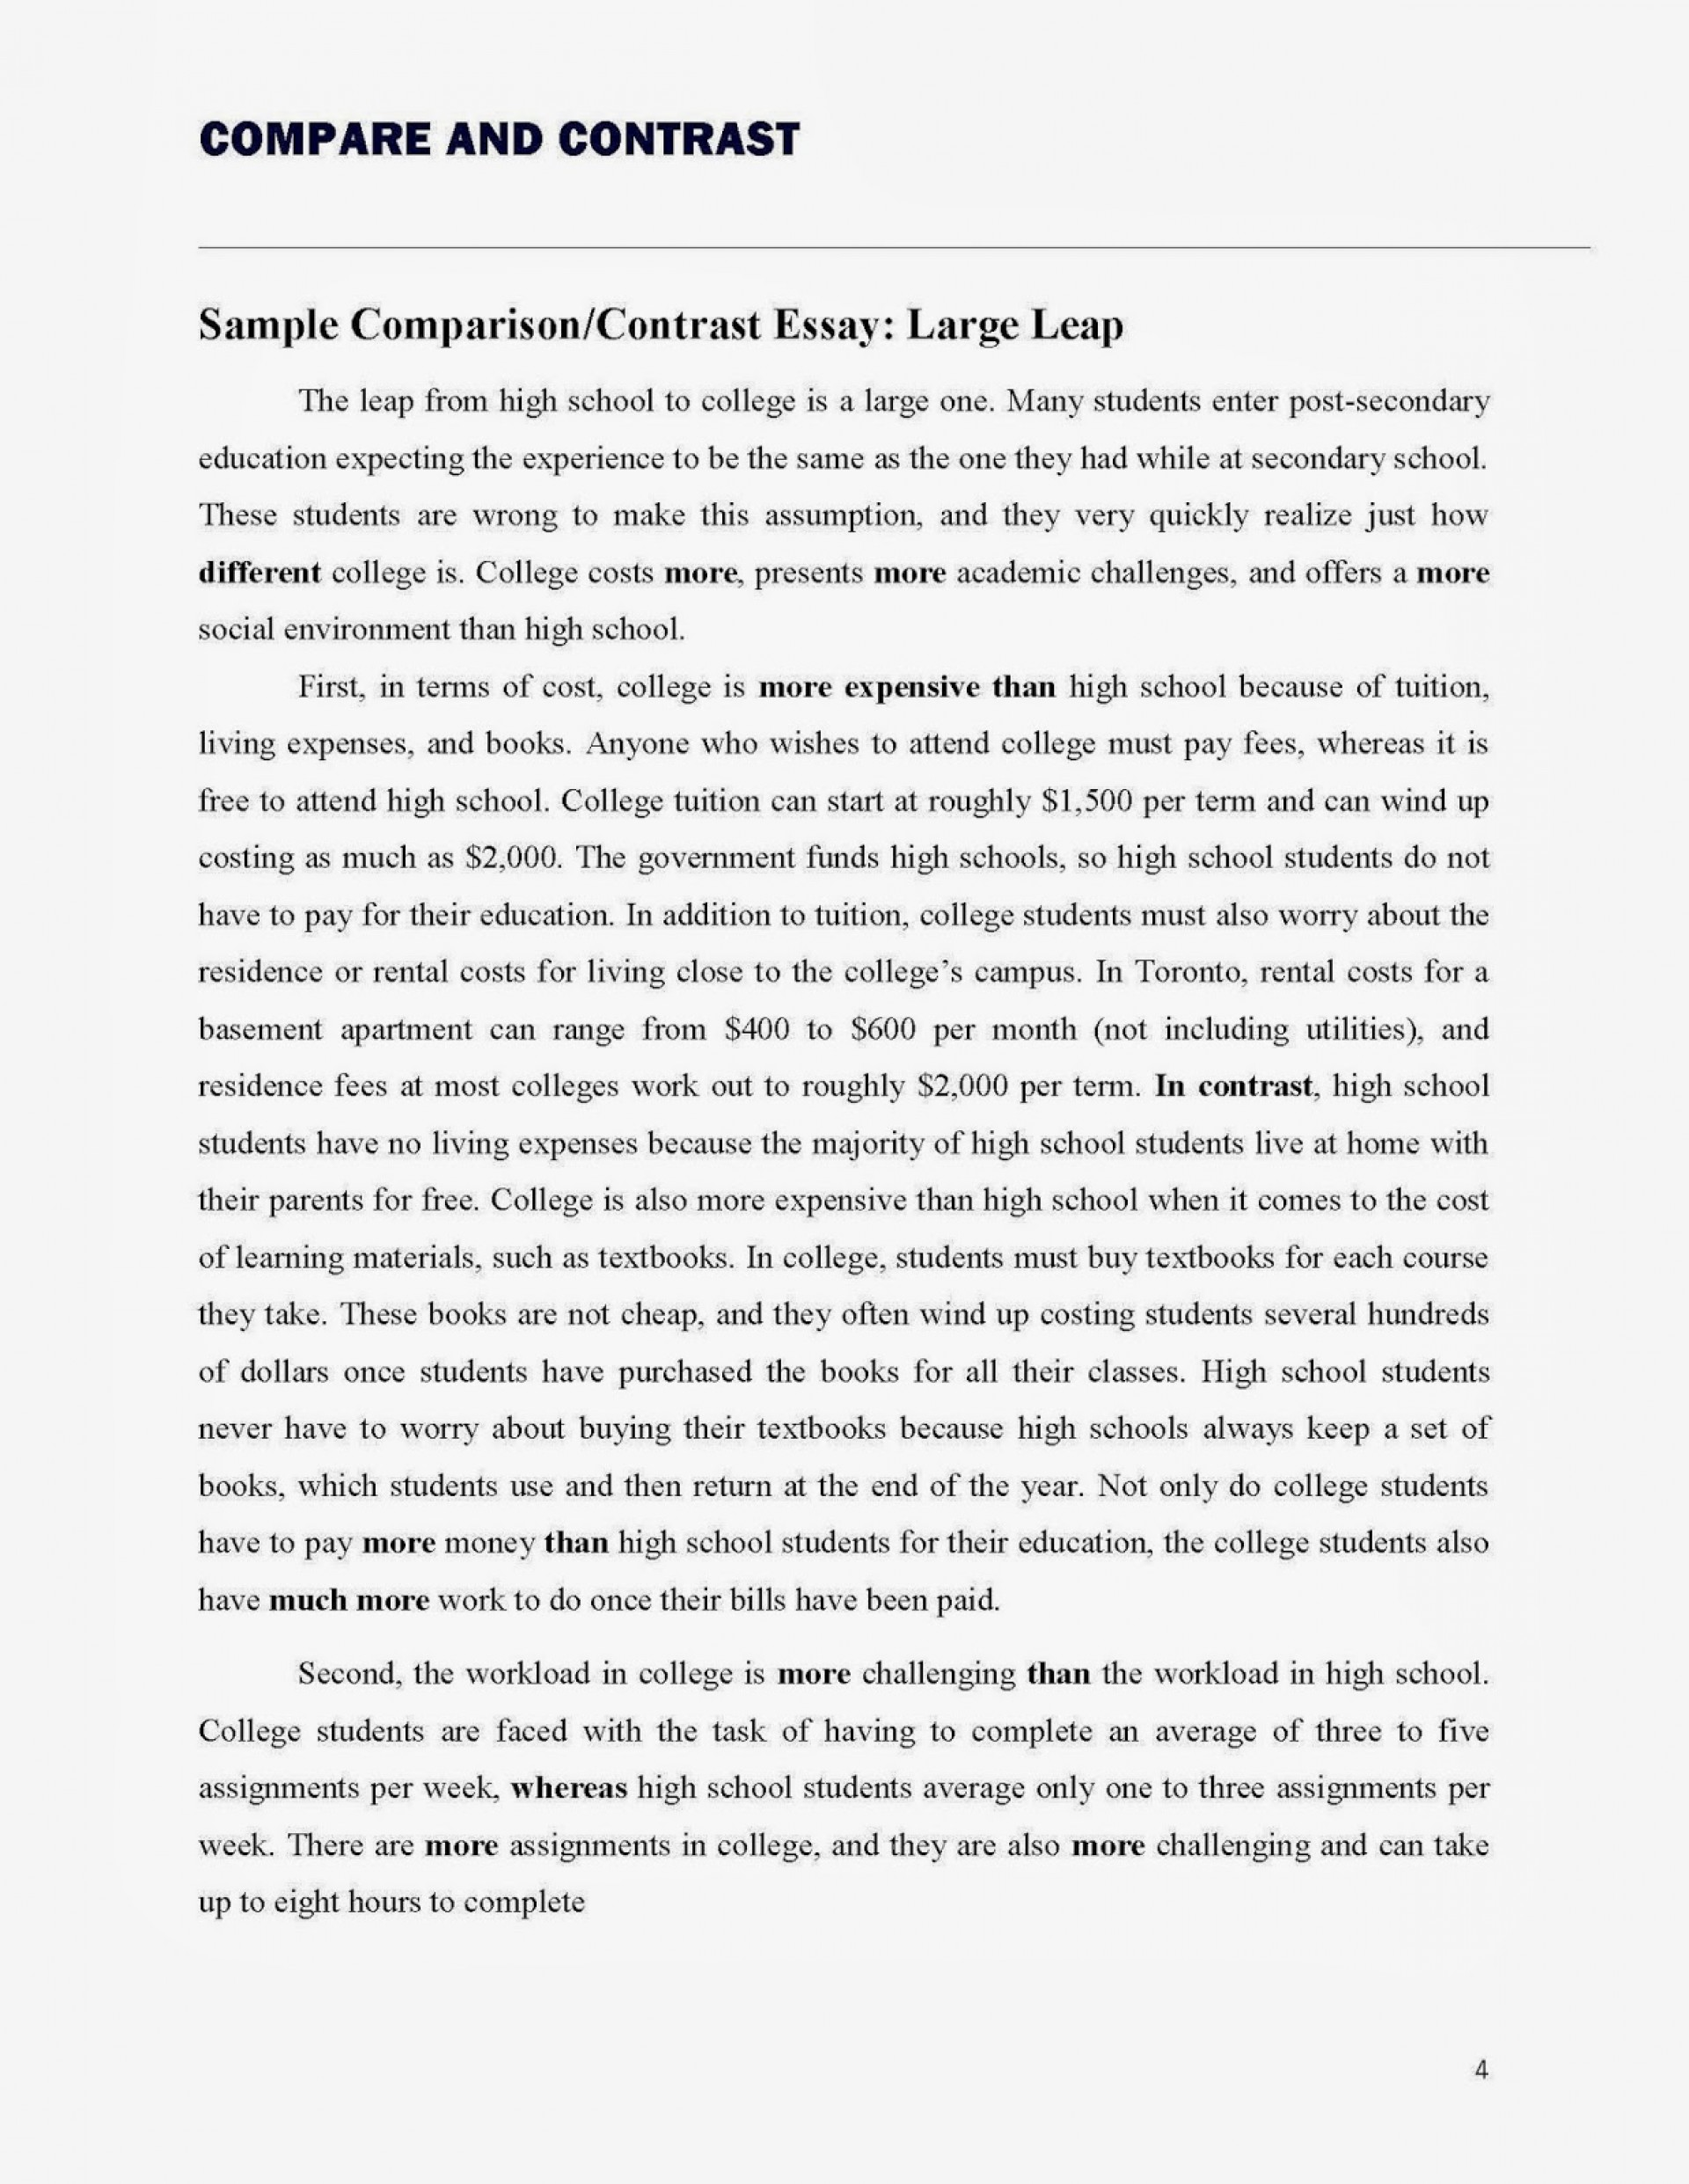 003 Compareandcontrastessay Page 4h125 Compare Essay Beautiful Contrast Topics Ielts Examples College Middle School 1920